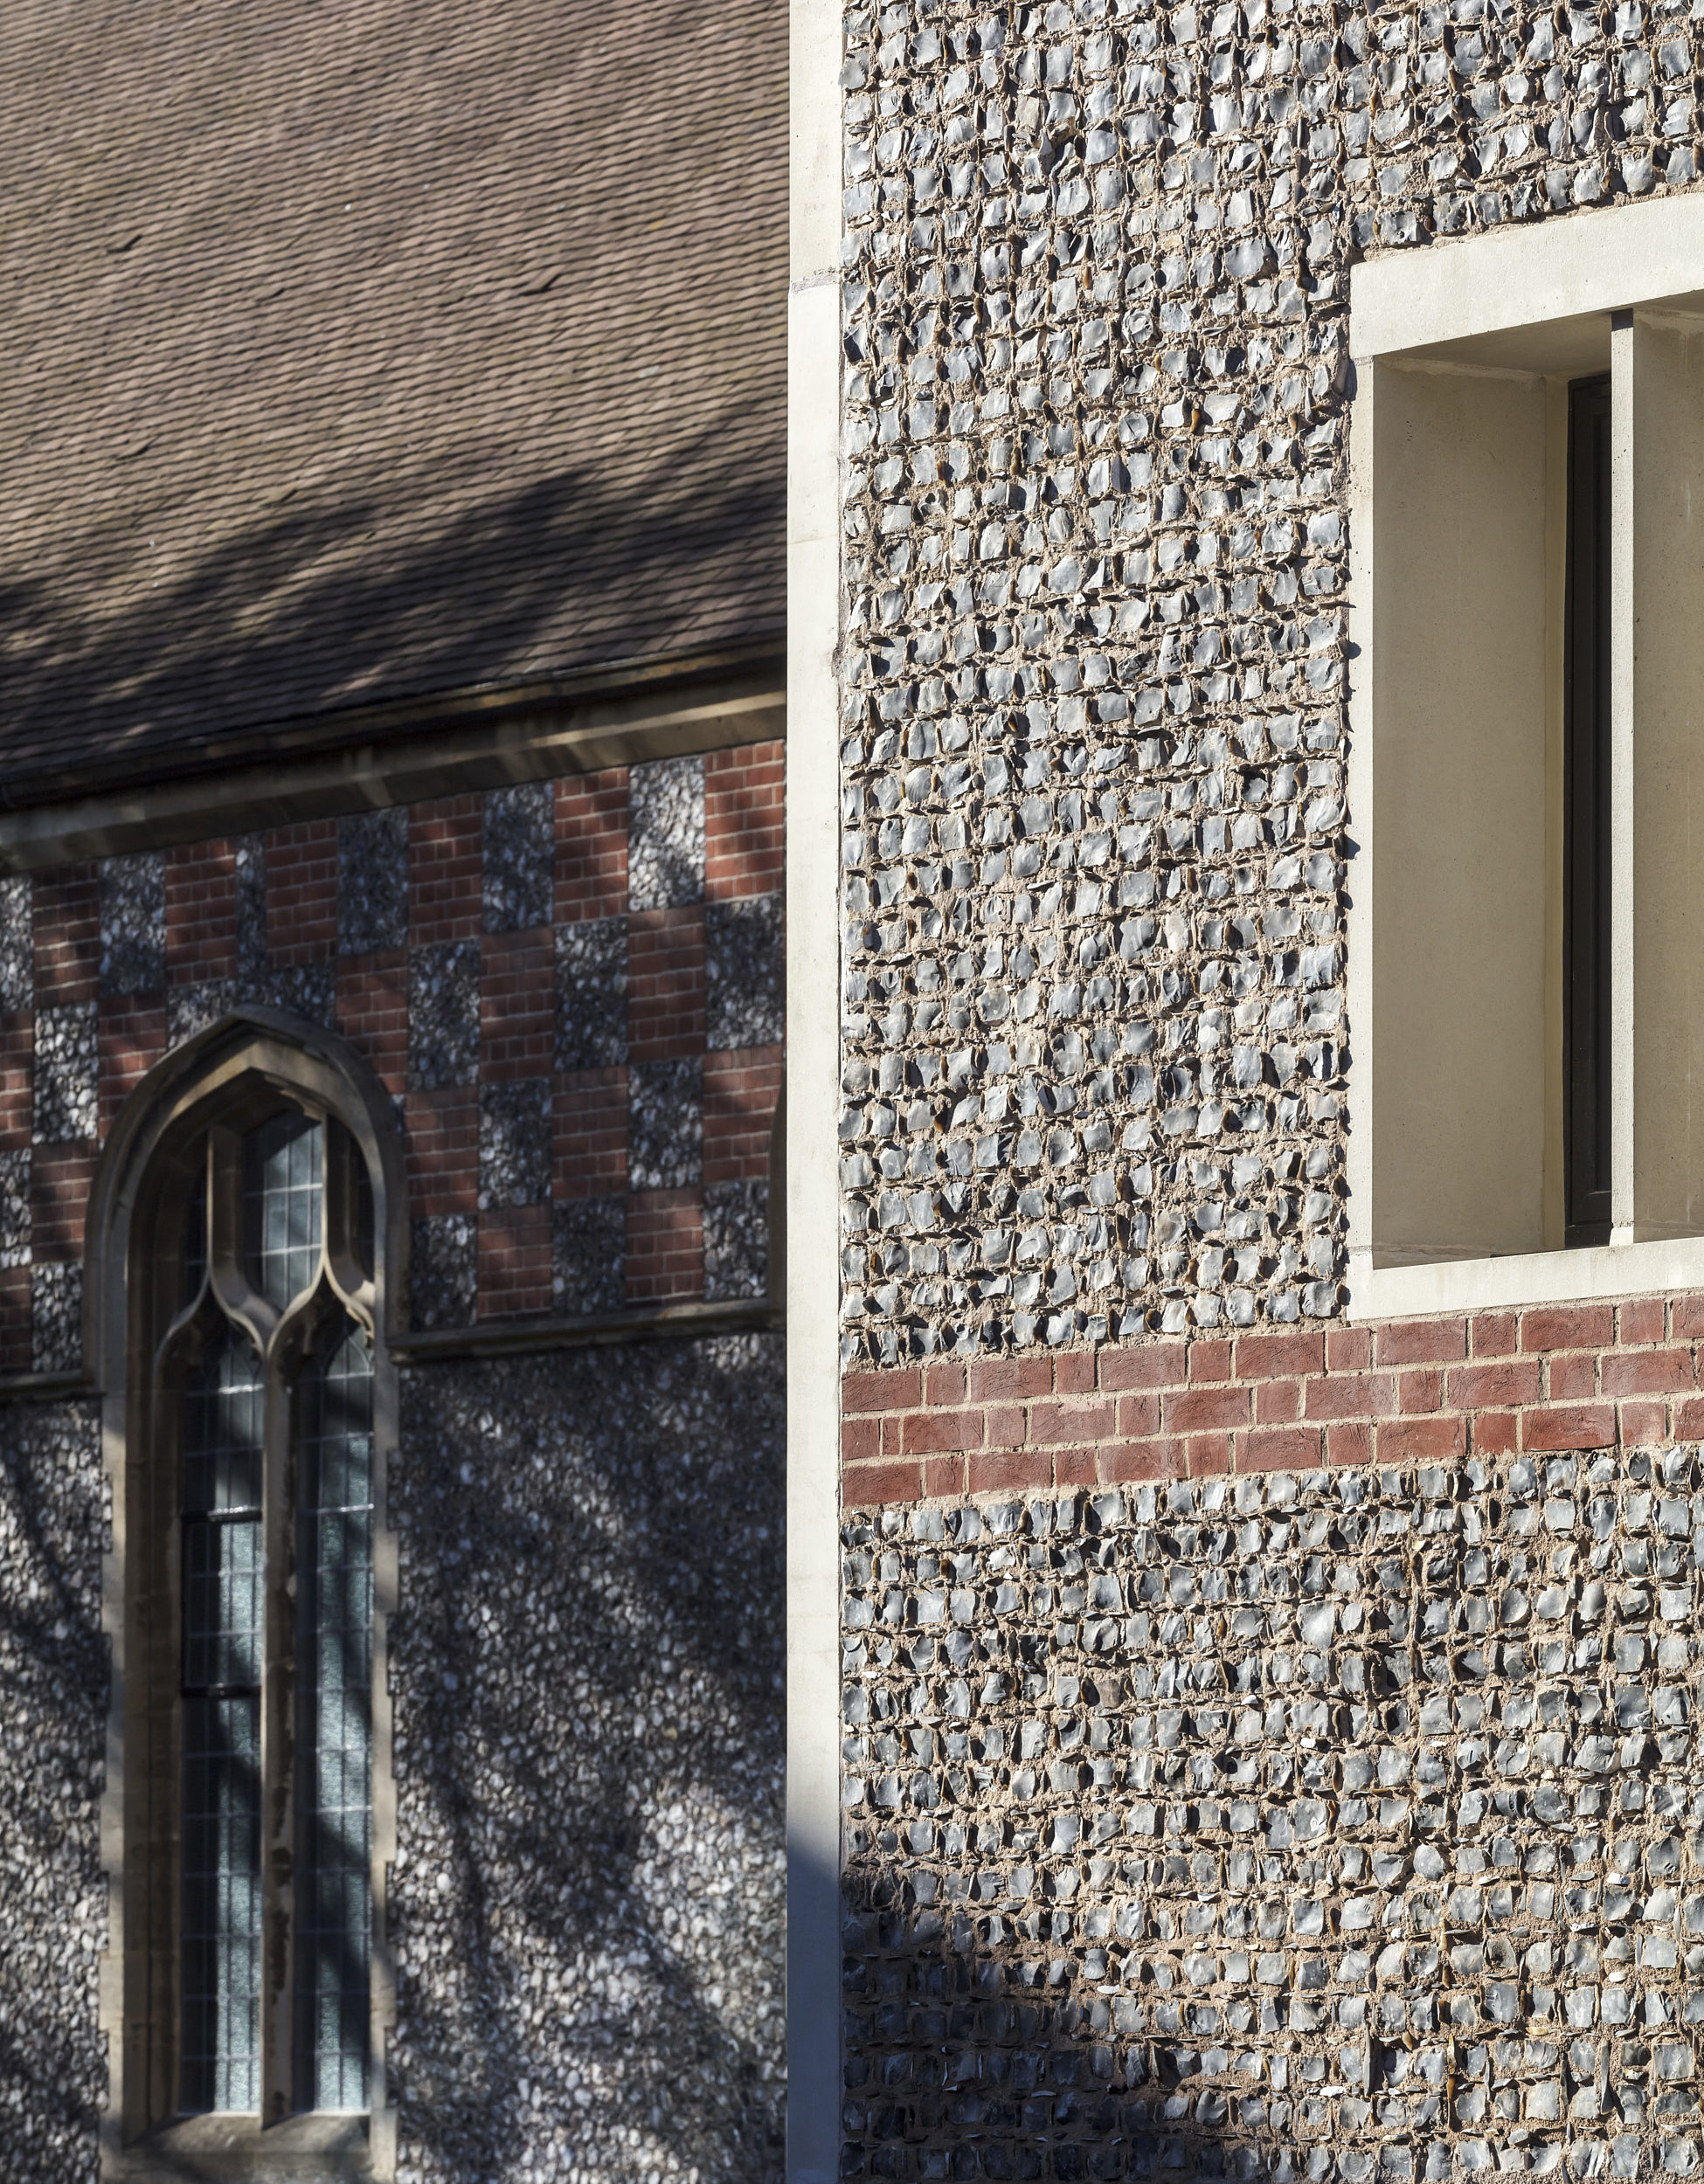 New exterior materials complement historical surfaces.